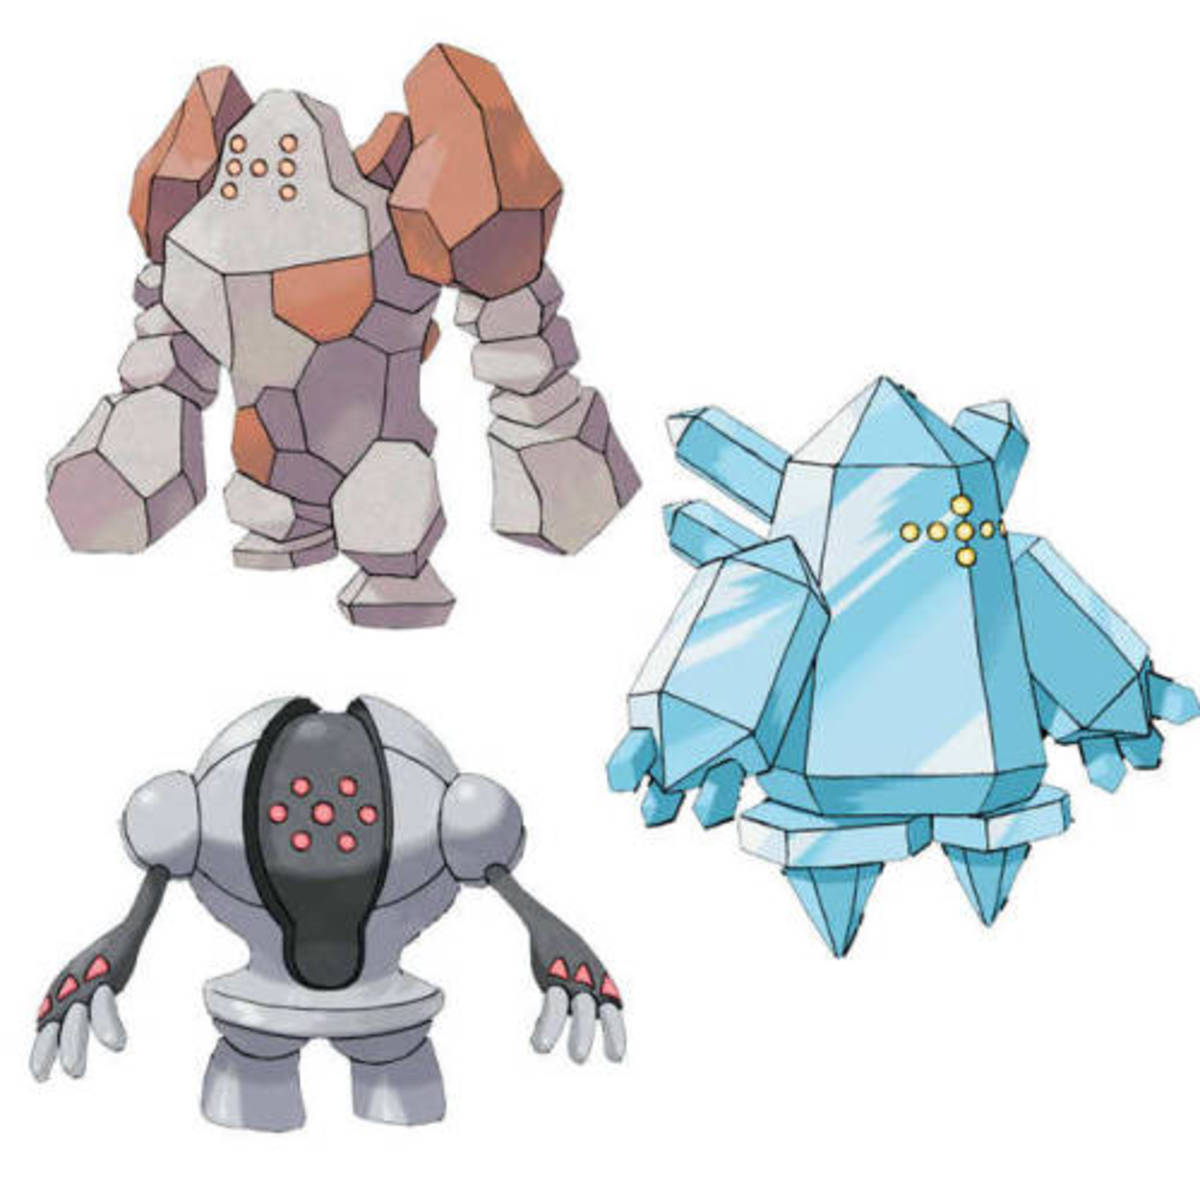 Regirock, Regice, and Registeel